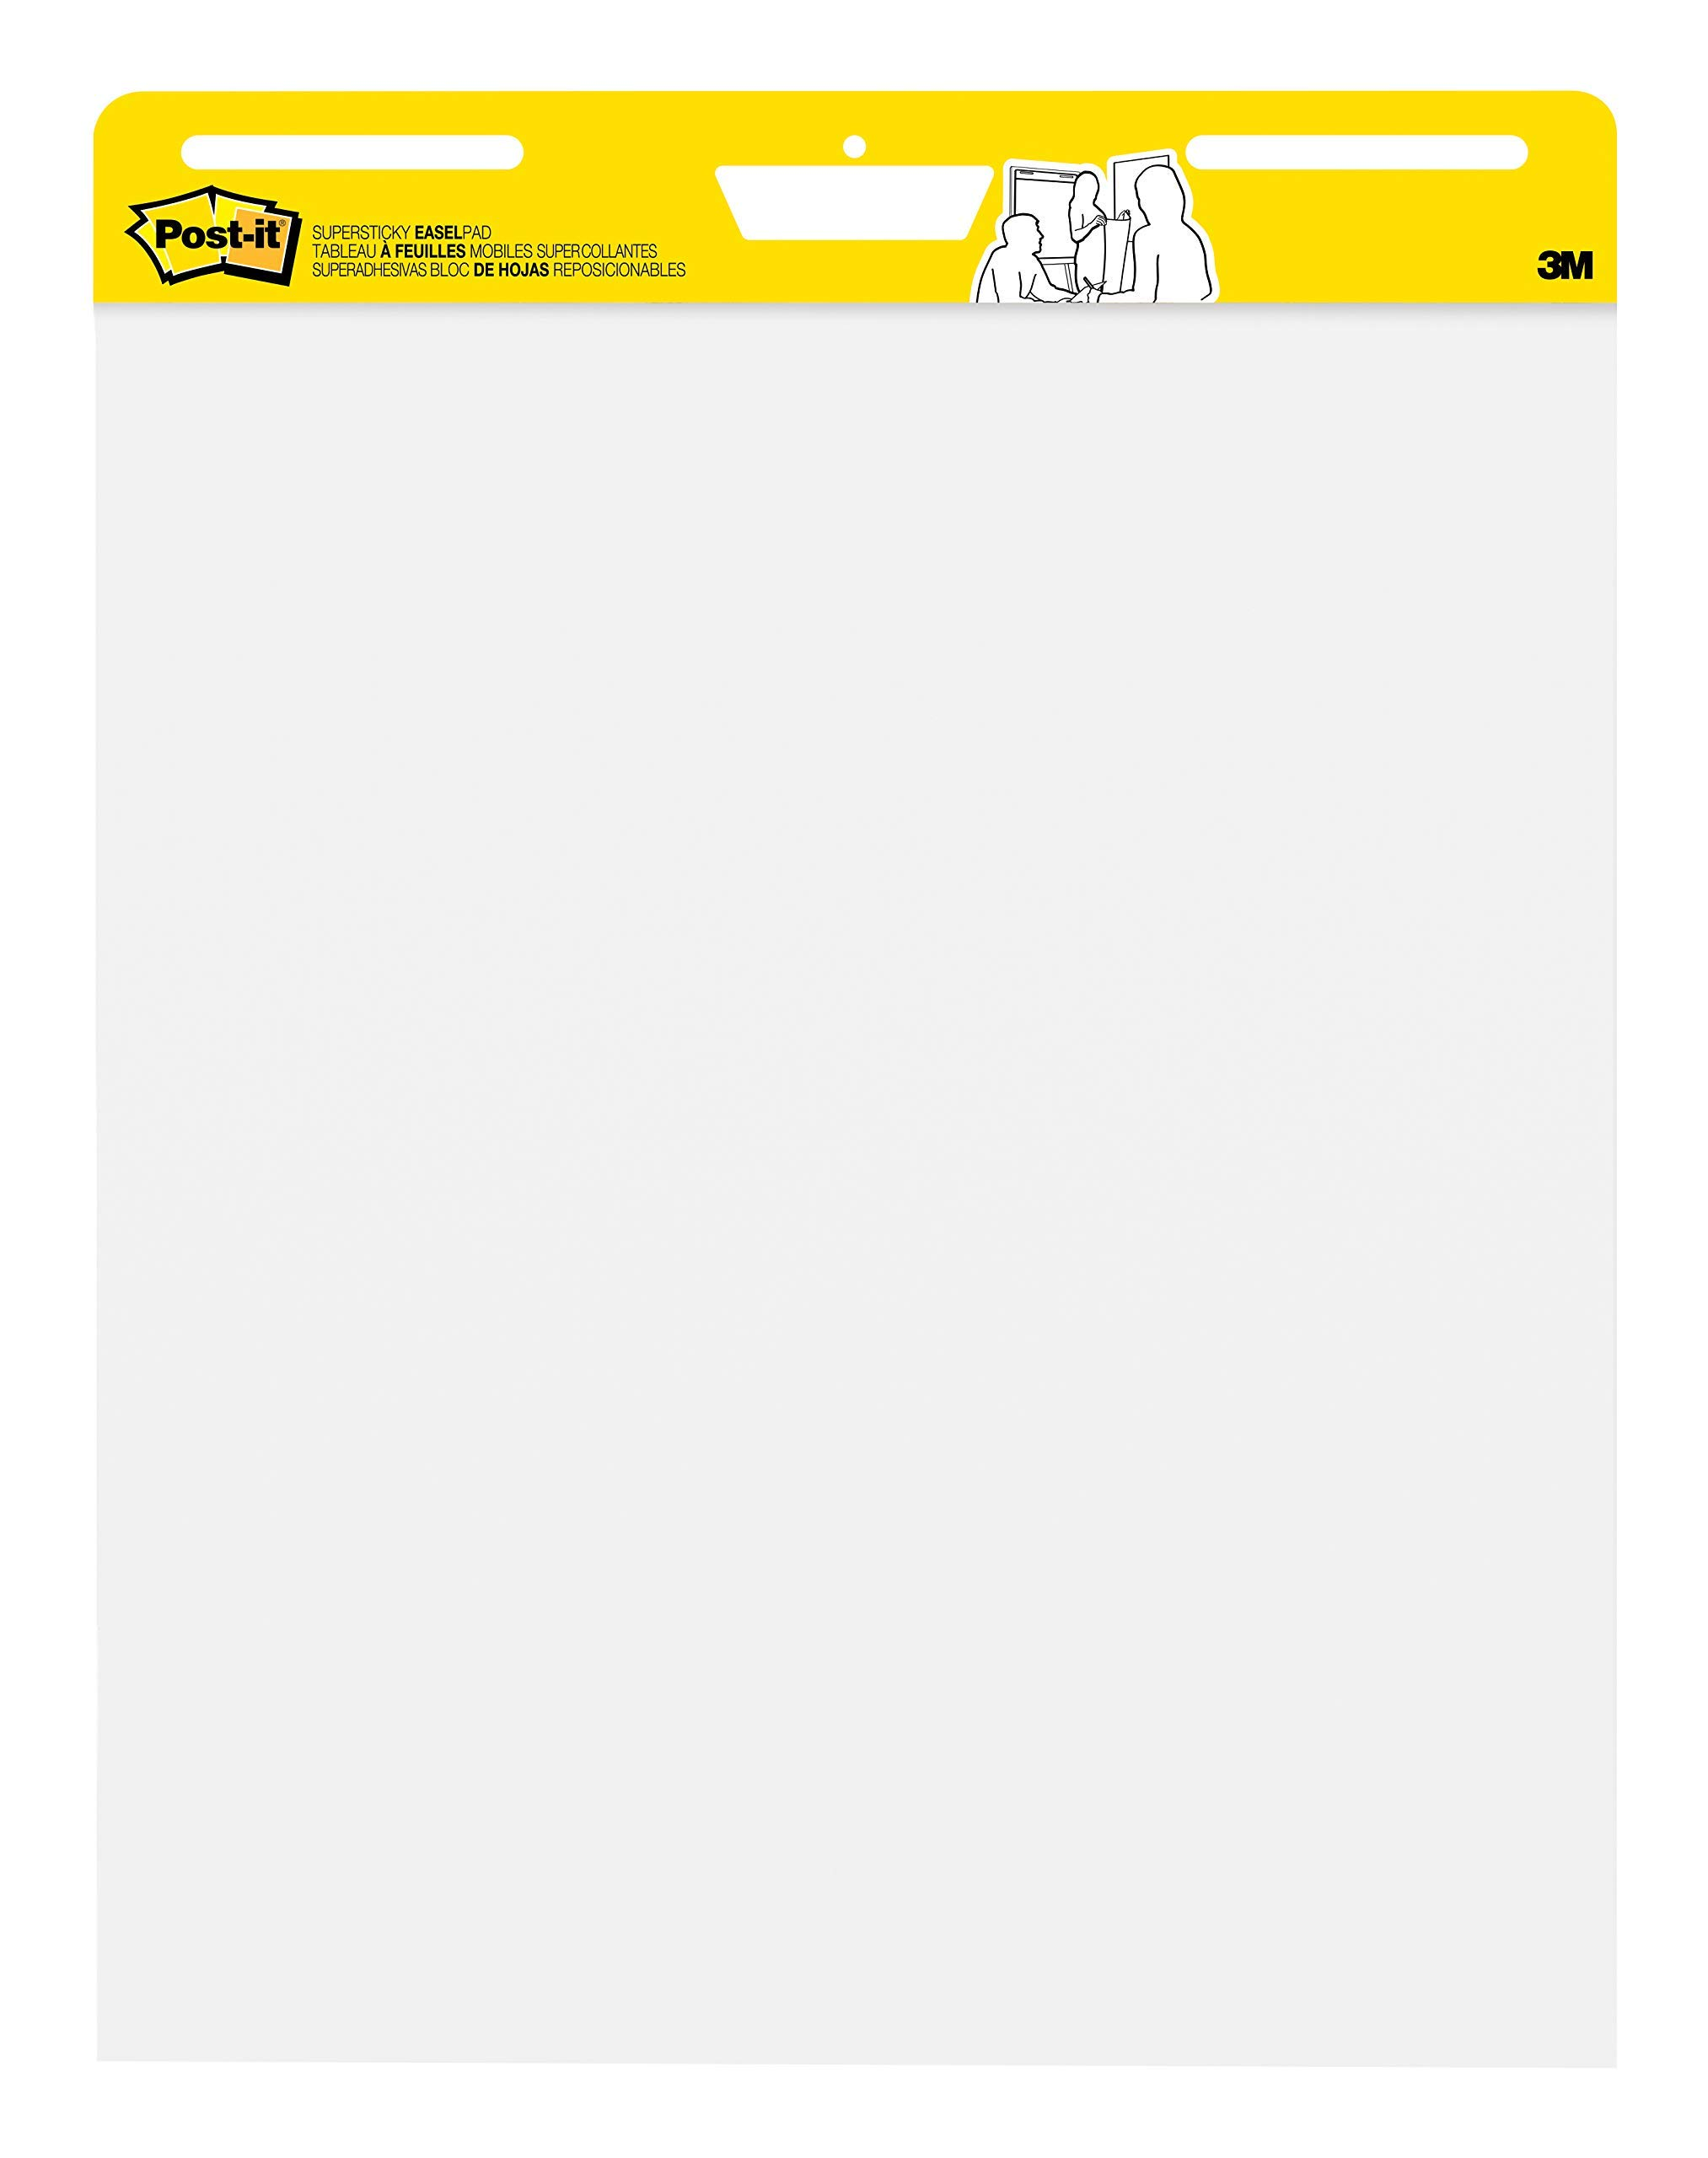 Post-it Super Sticky Easel Pad, 25 x 30 Inches, 30 Sheets/Pad, 6 Pads (559VAD6PK), Large White Premium Self Stick Flip Chart Paper, Super Sticking Power (Renewed) by Post-it (Image #2)